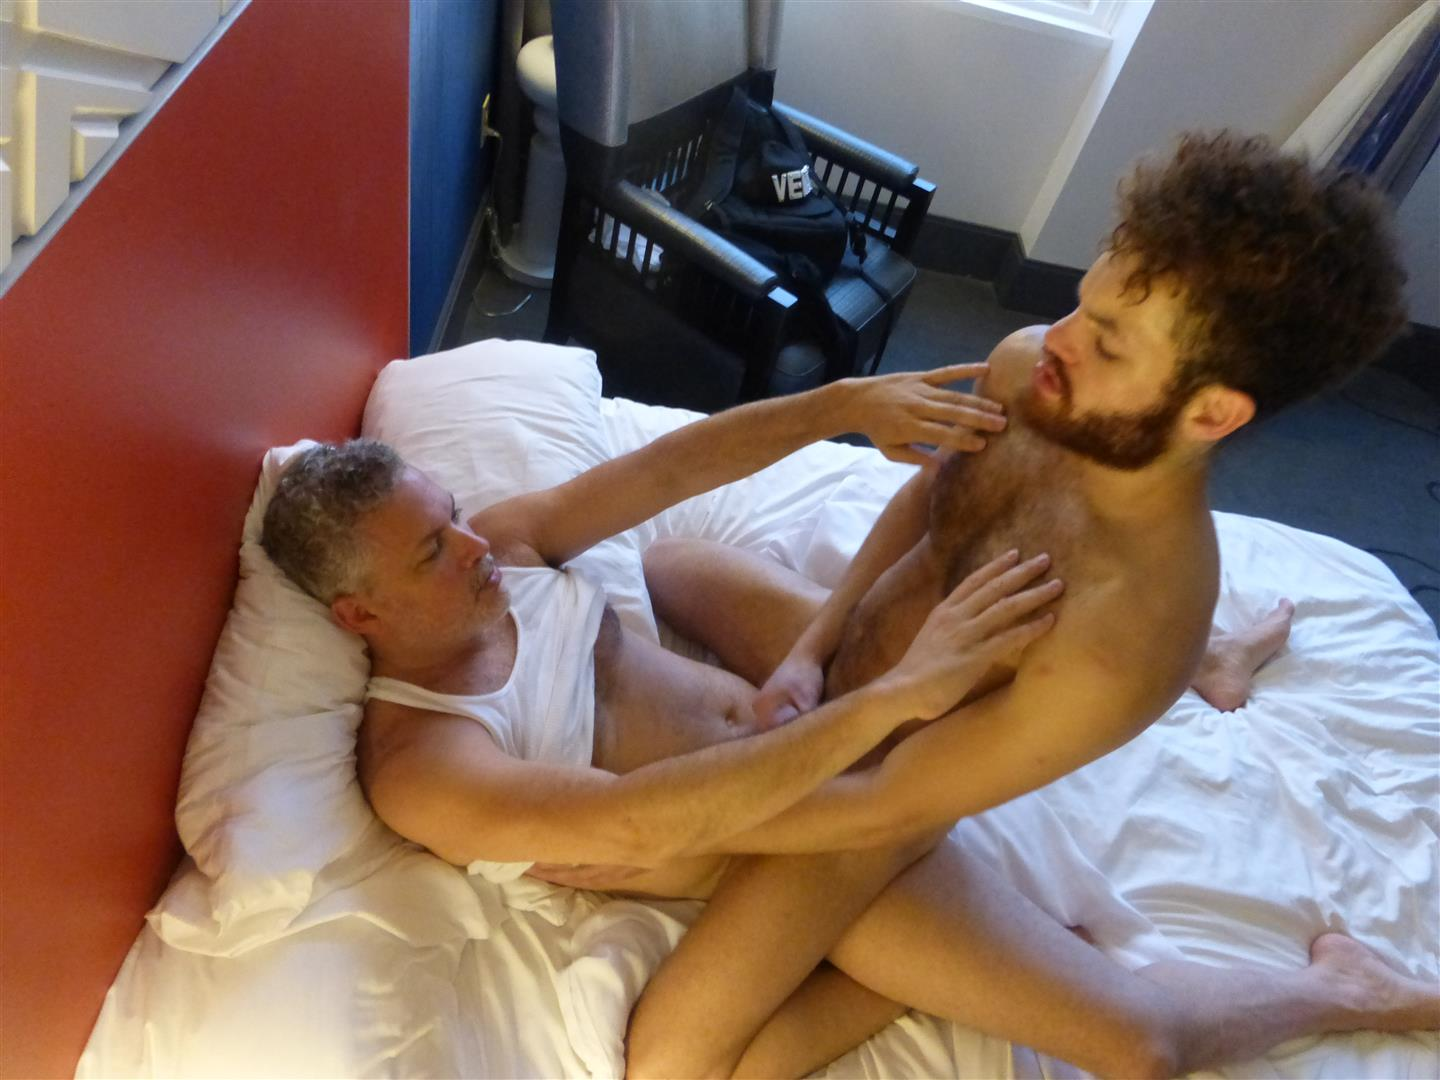 Maverick-Men-Adam-Hairy-Muscle-Cub-Barebacked-By-Two-Muscle-Daddies-Amateur-Gay-Porn-42 Young Hairy Muscle Cub With A Big Uncut Cock Takes Two Daddy Cocks